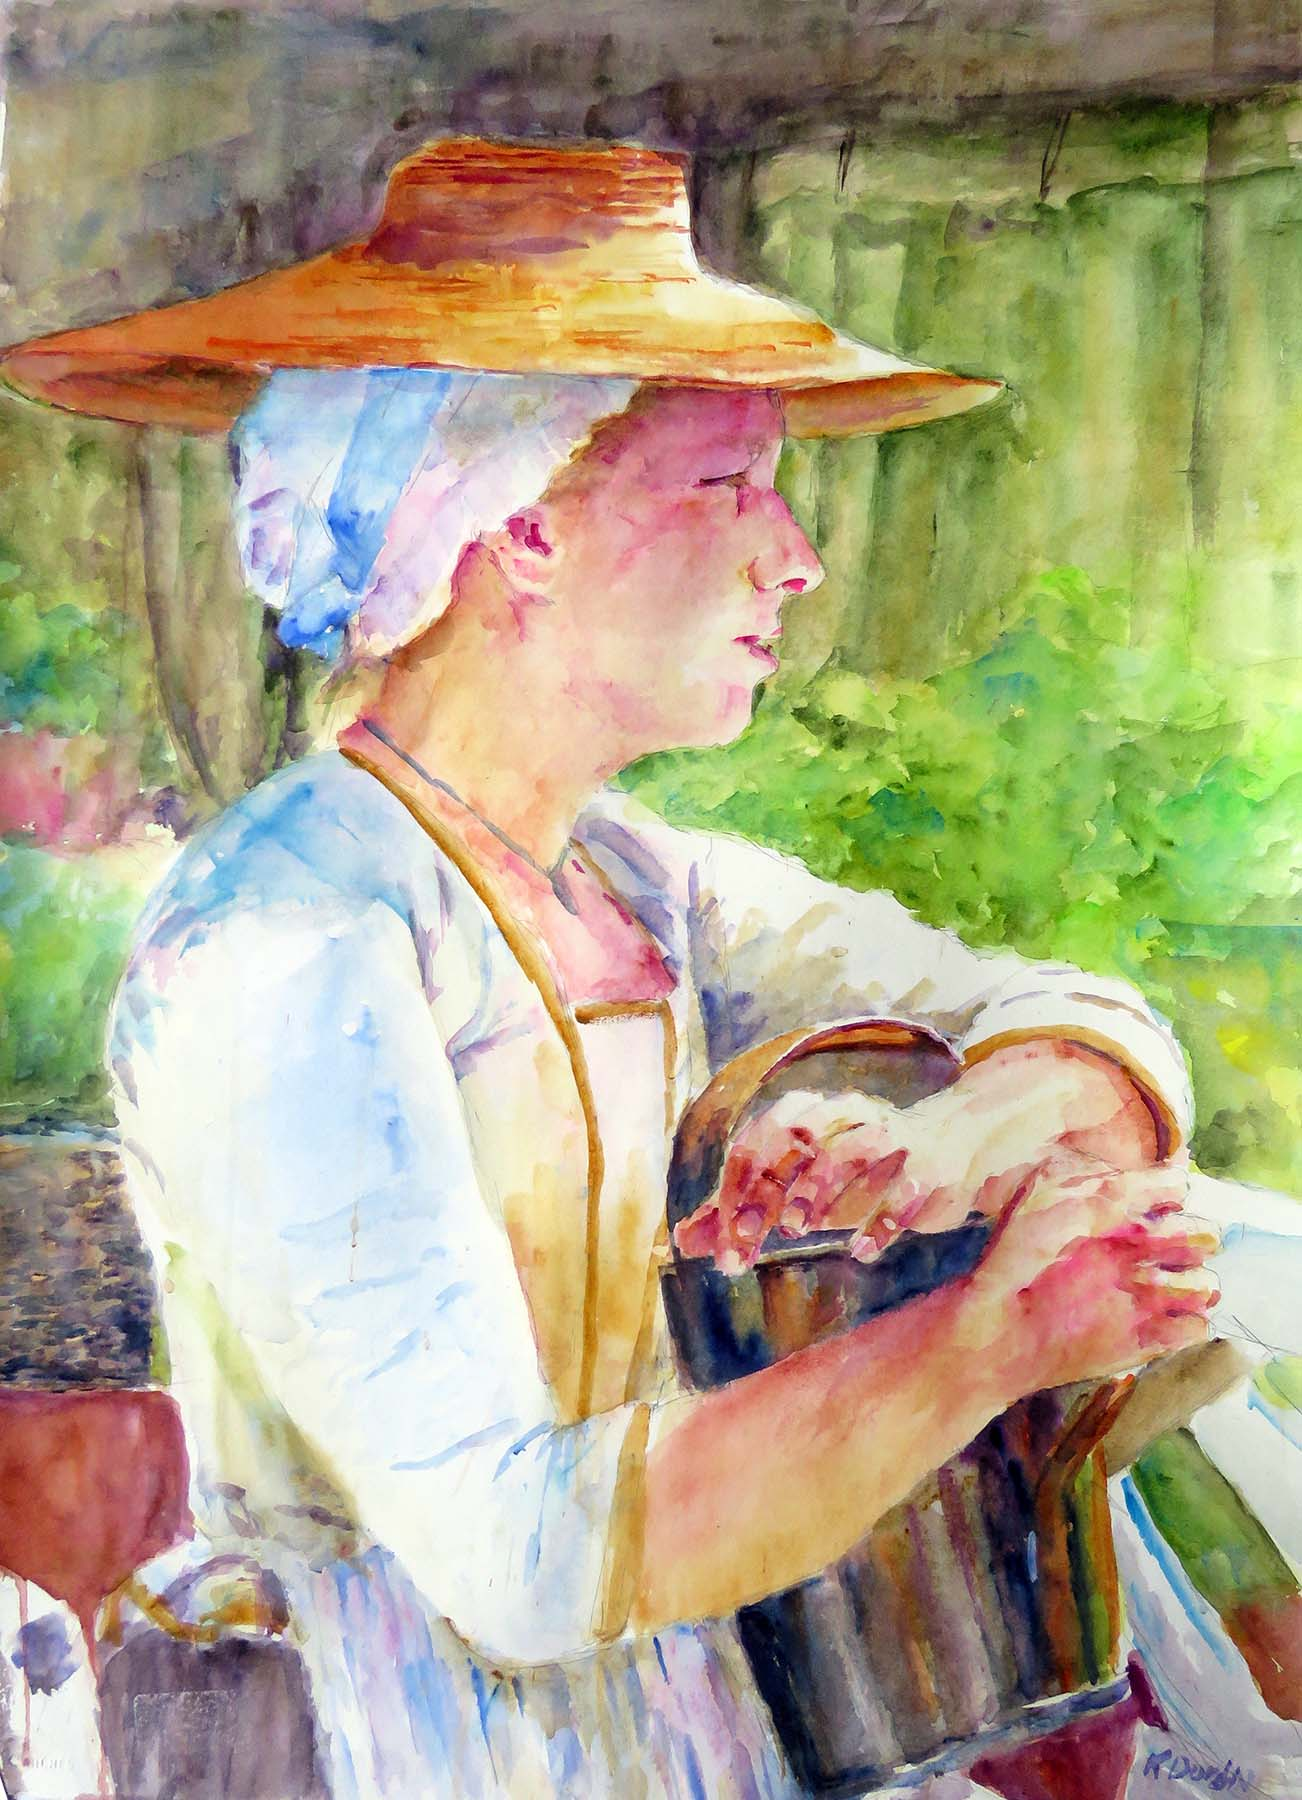 The Watering Can, Watercolor Society of Alabama 2019 Georgia Watercolor Society Award